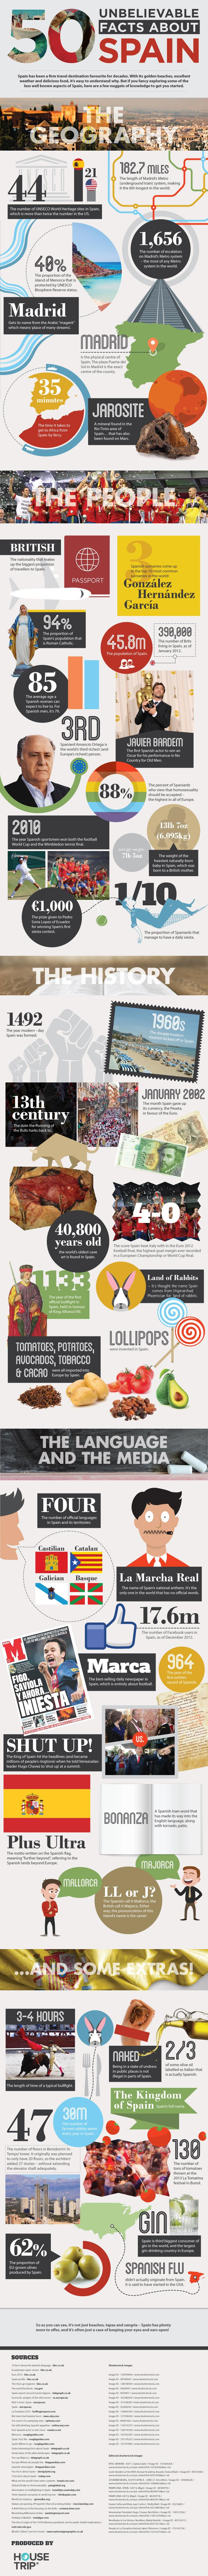 50-Facts-About-Spain